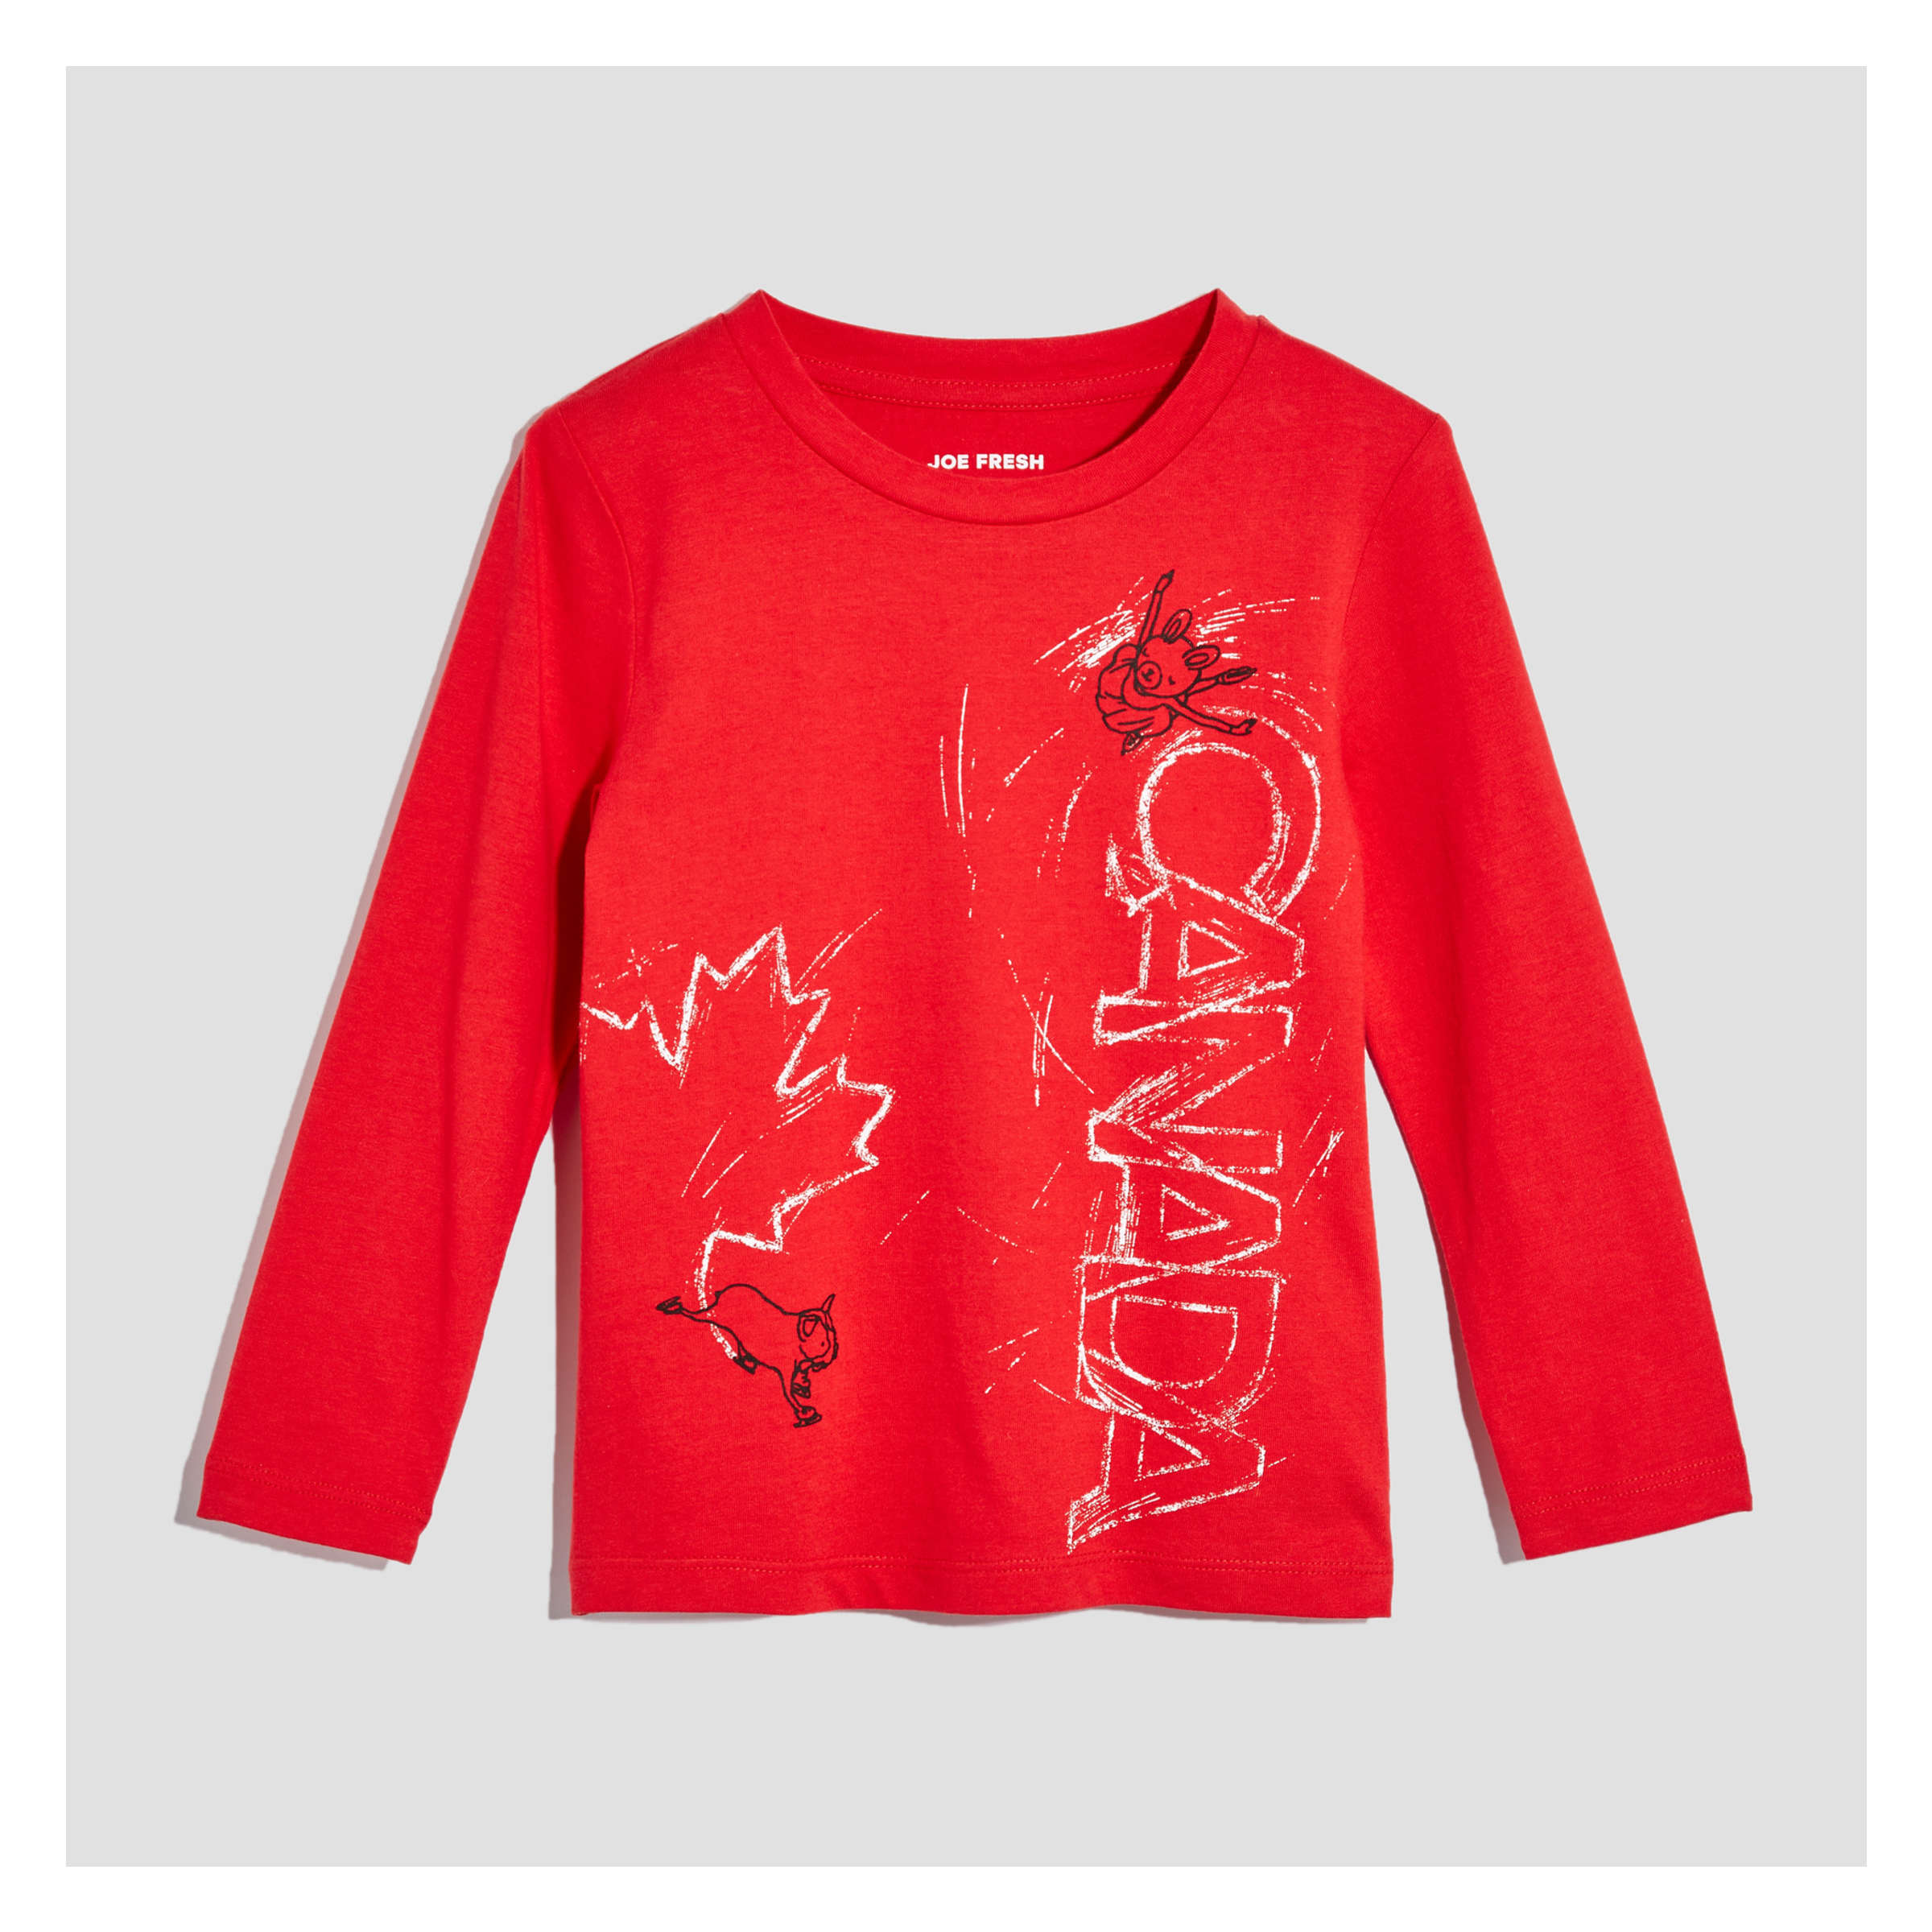 6d142c85 Toddler Girls' Long Sleeve Canada Tee in Red from Joe Fresh